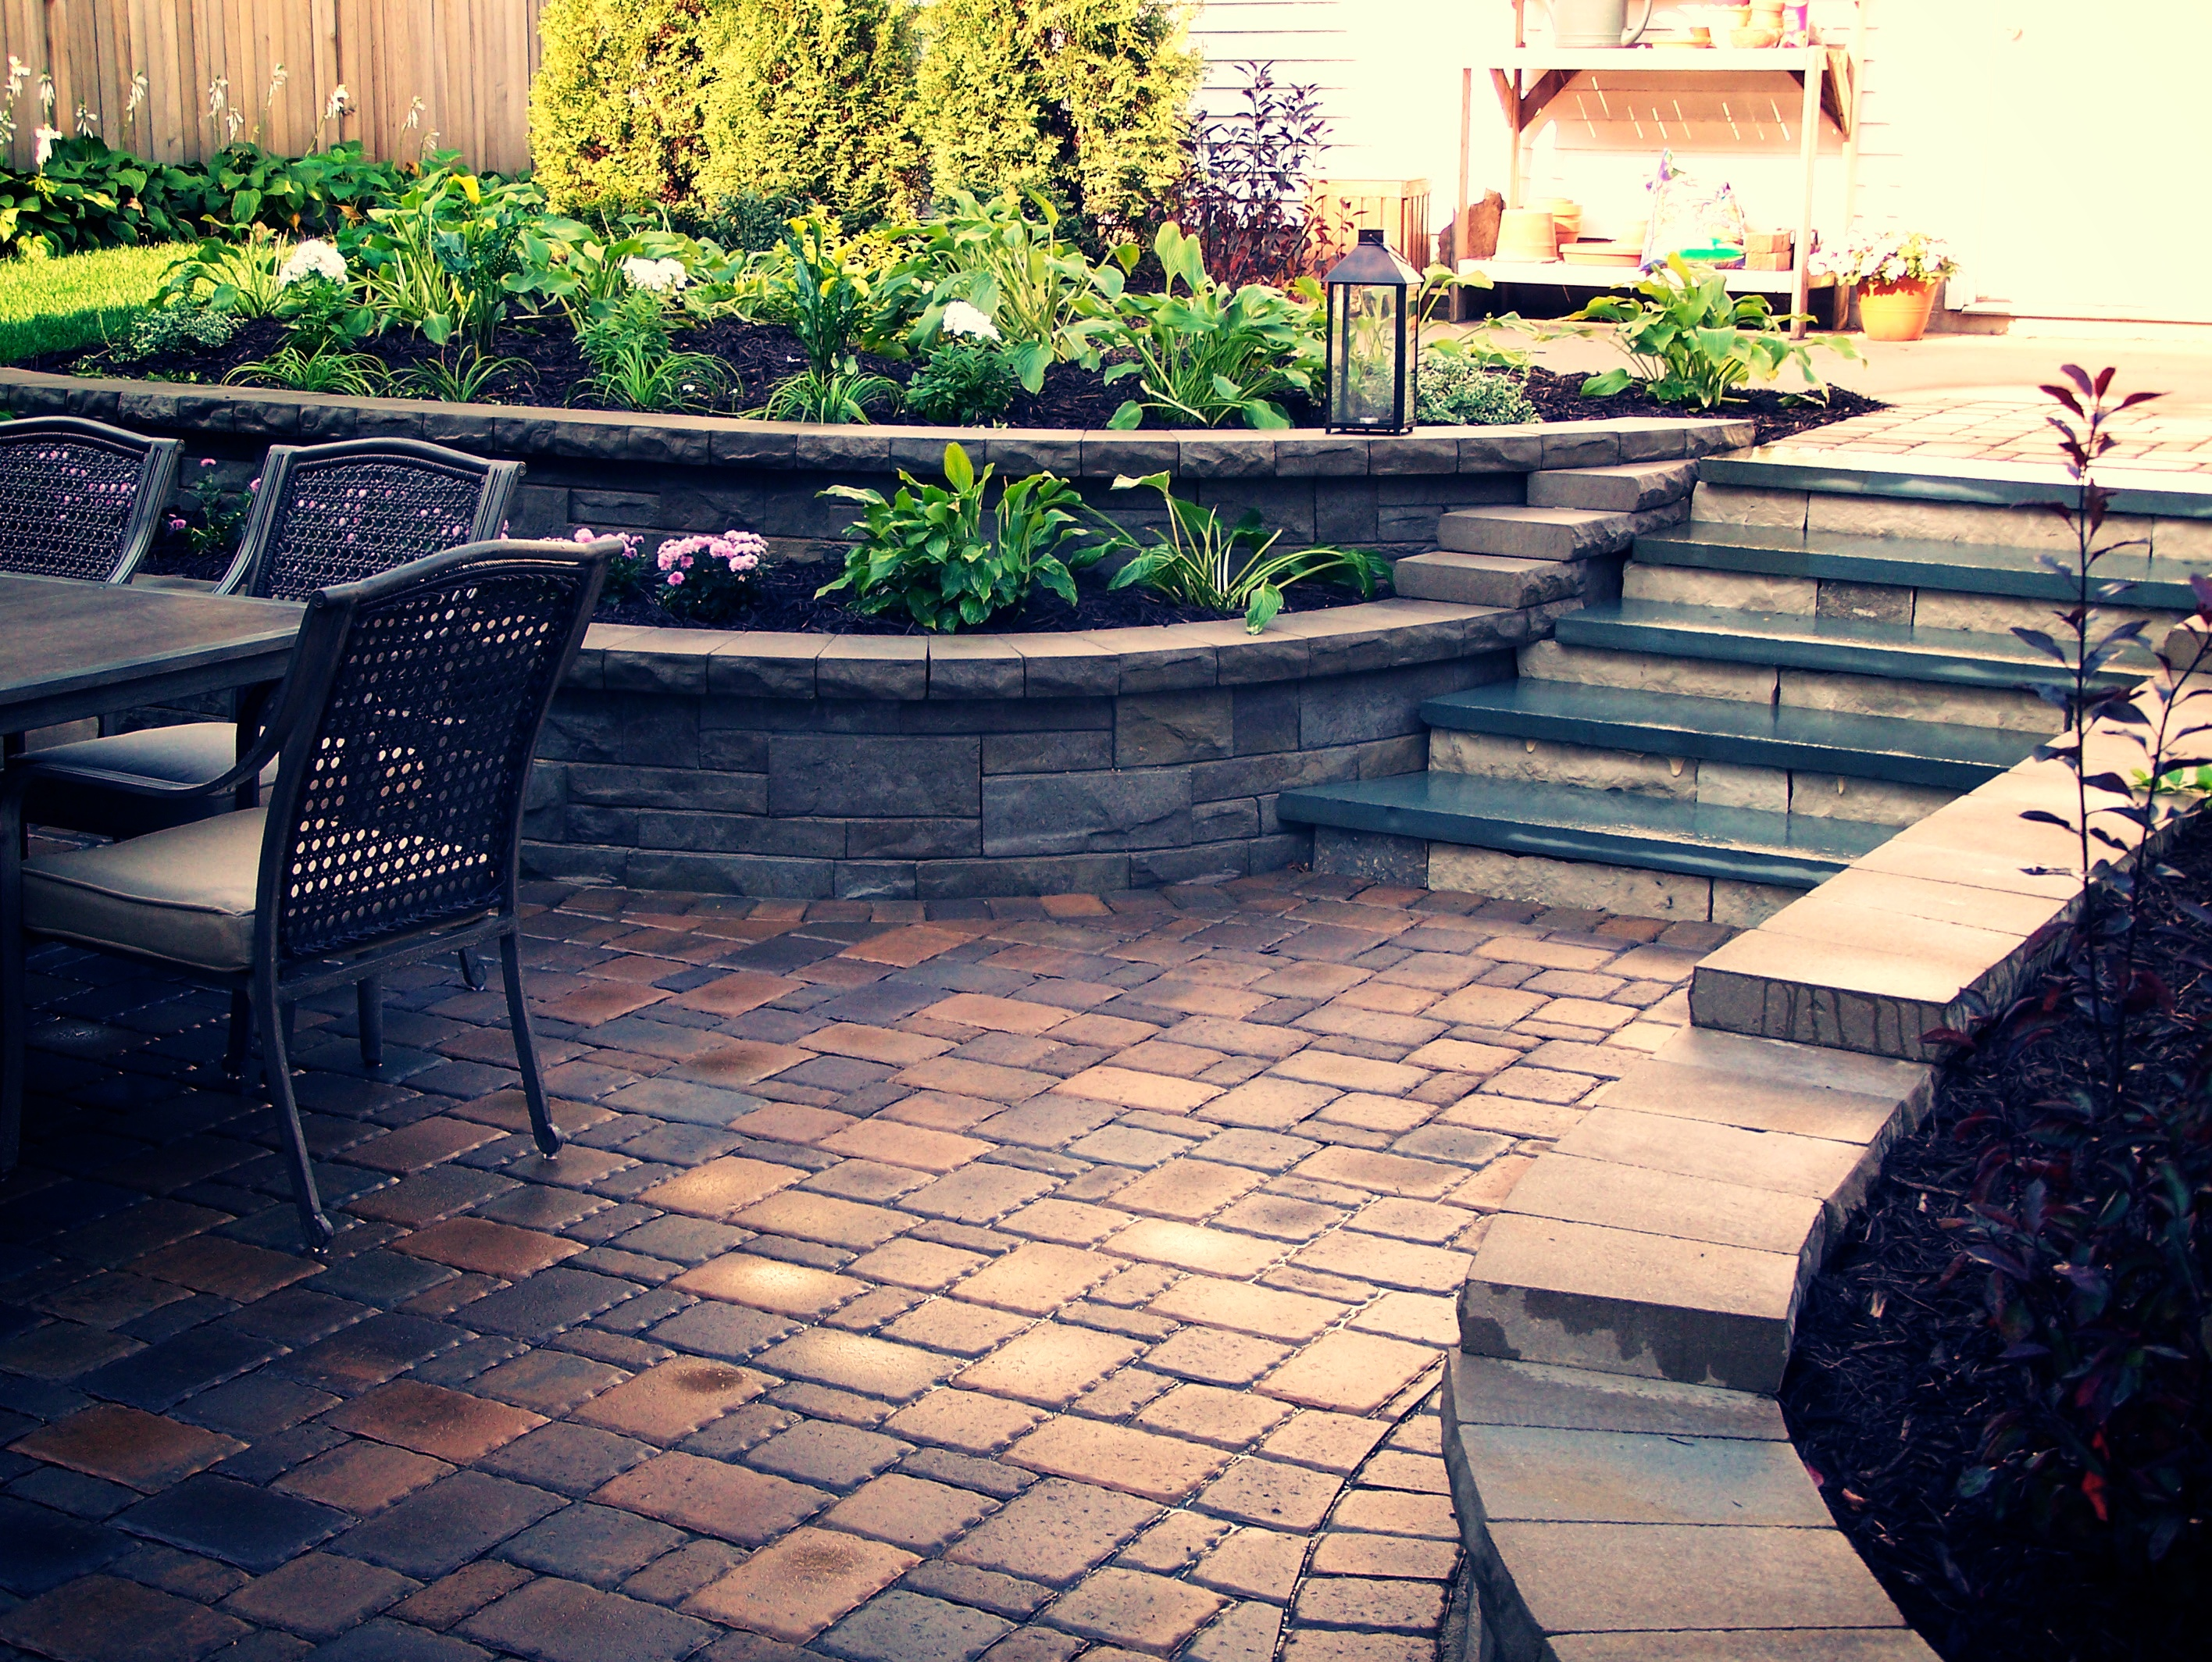 Patios - Great Goats LandscapingGreat Goats Landscaping on Patio Stone Wall Ideas id=86898